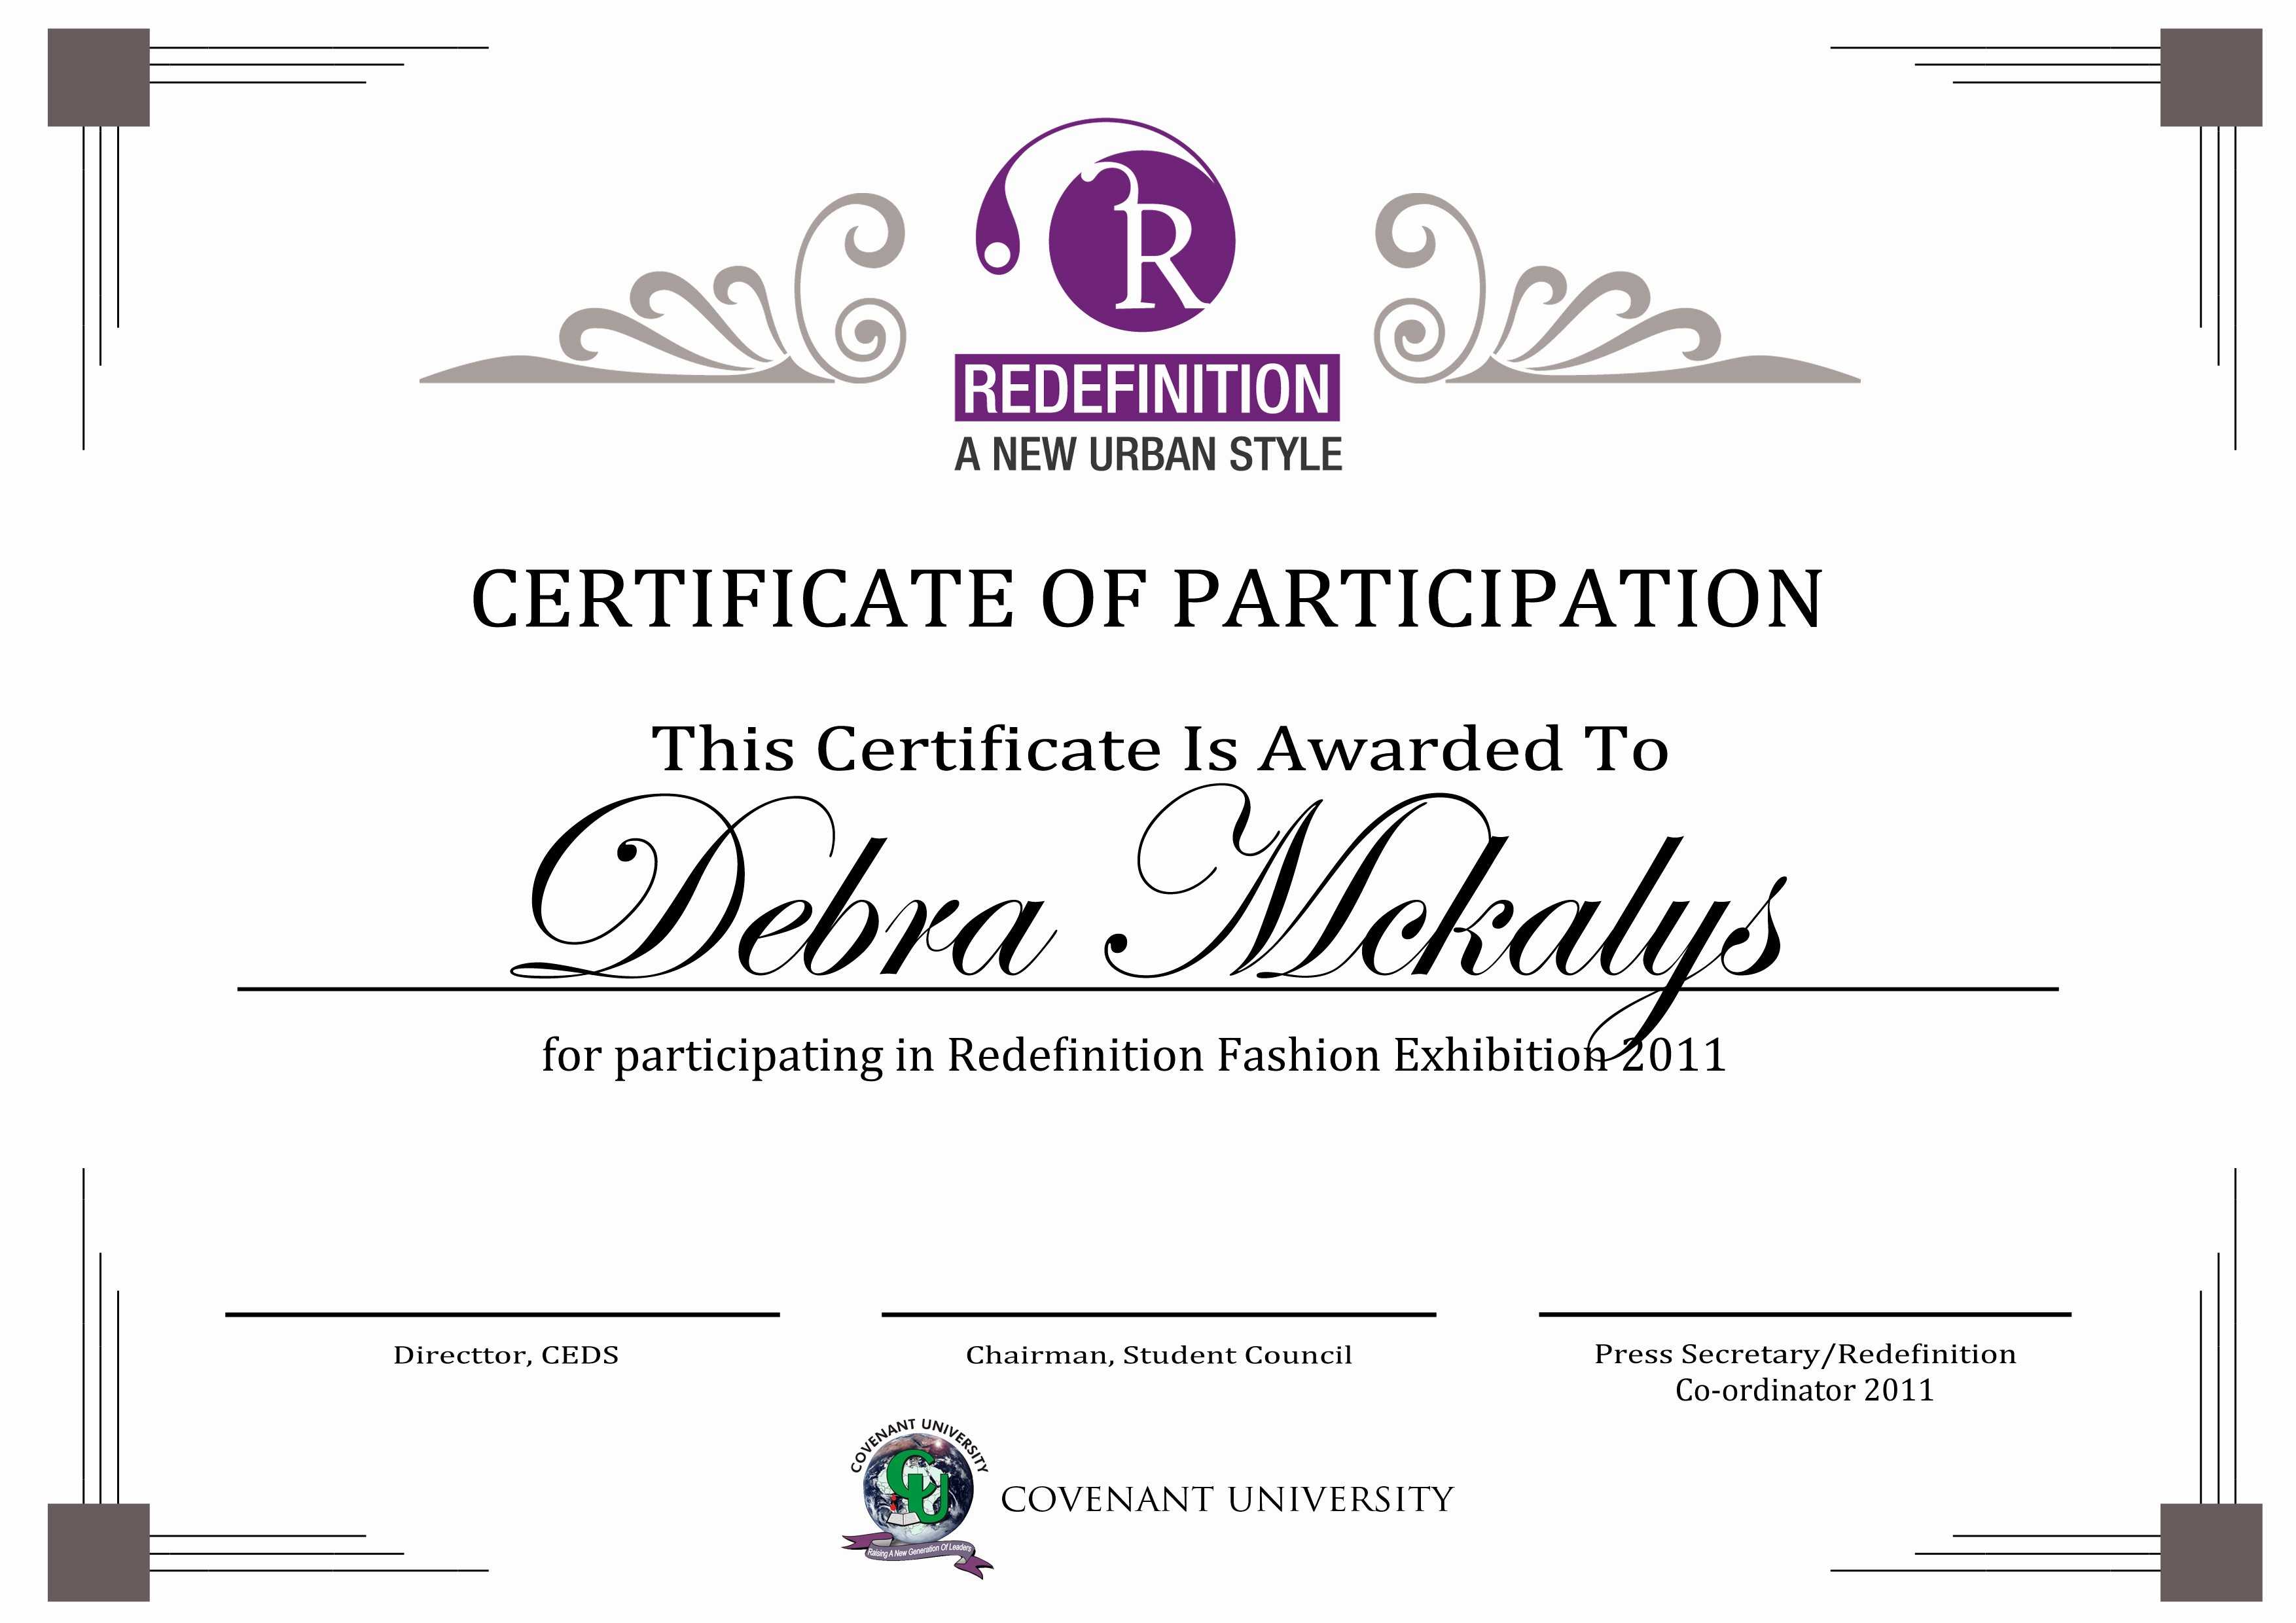 Certificate Of Participation Wording Samples Luxury Redefinition Certificate by Sjkeri On Deviantart